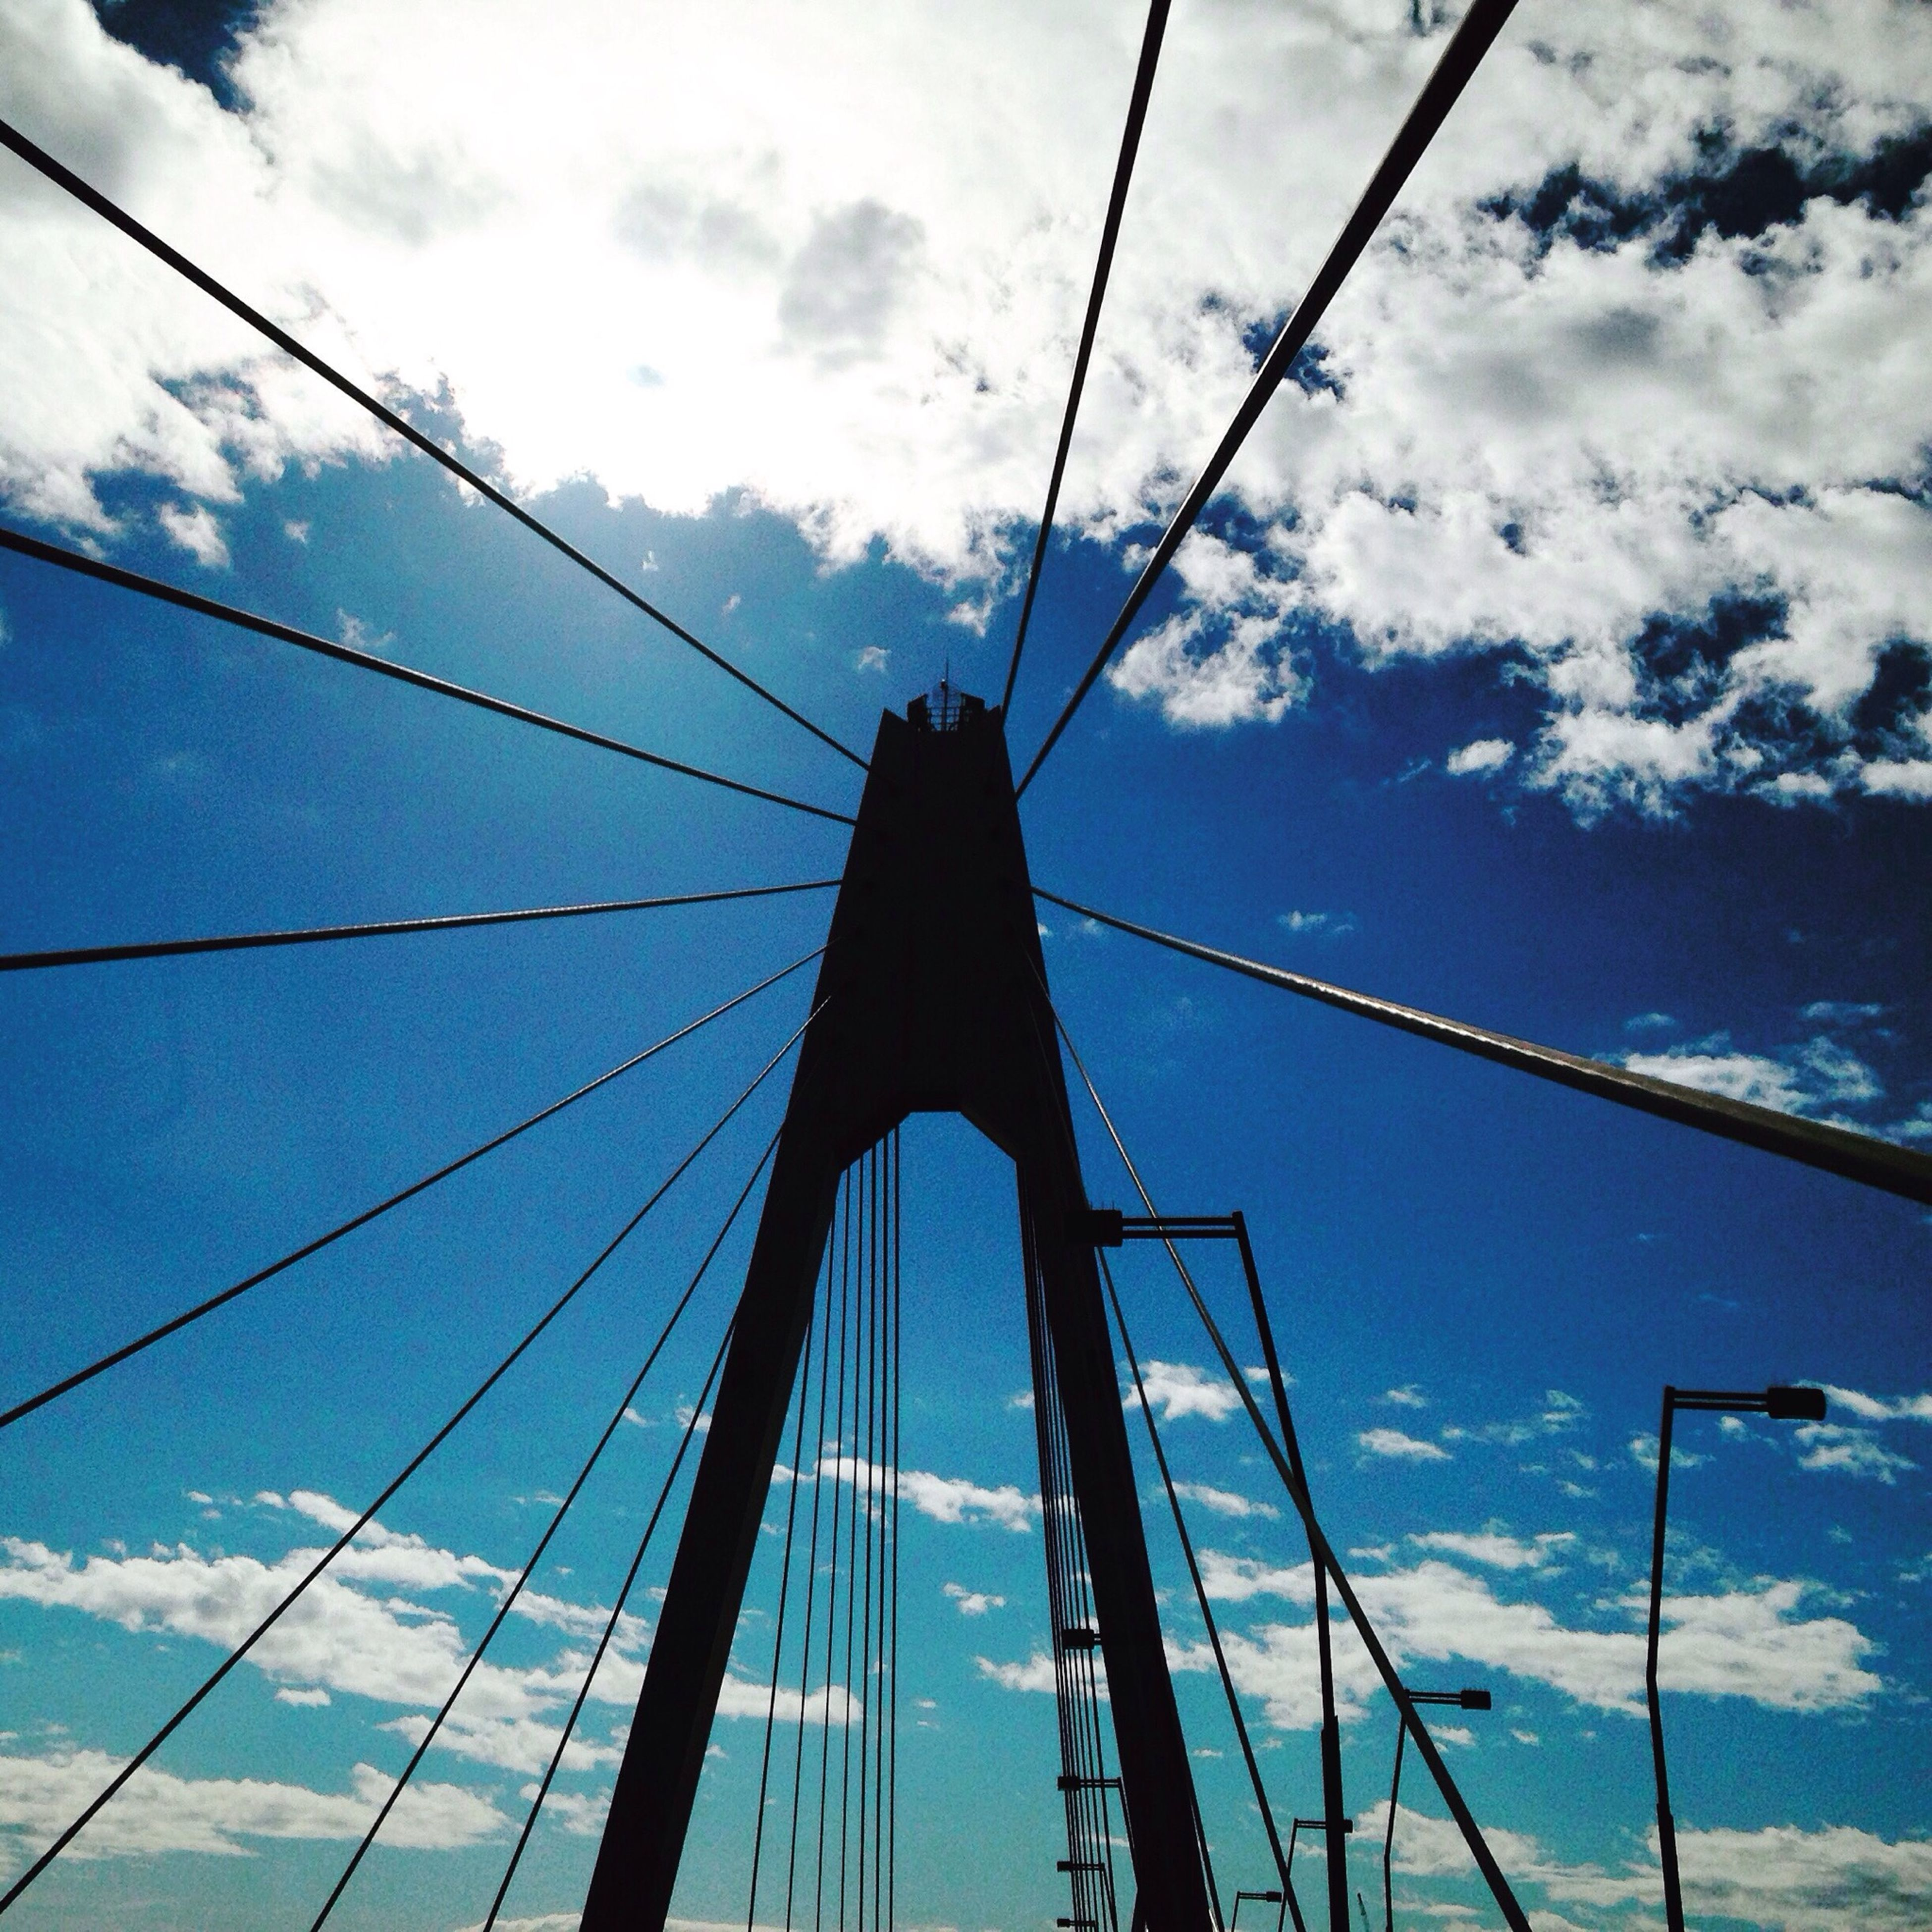 sky, transportation, low angle view, connection, cloud - sky, mast, suspension bridge, nautical vessel, cloud, engineering, cloudy, cable-stayed bridge, bridge - man made structure, blue, steel cable, mode of transport, built structure, cable, part of, sailboat